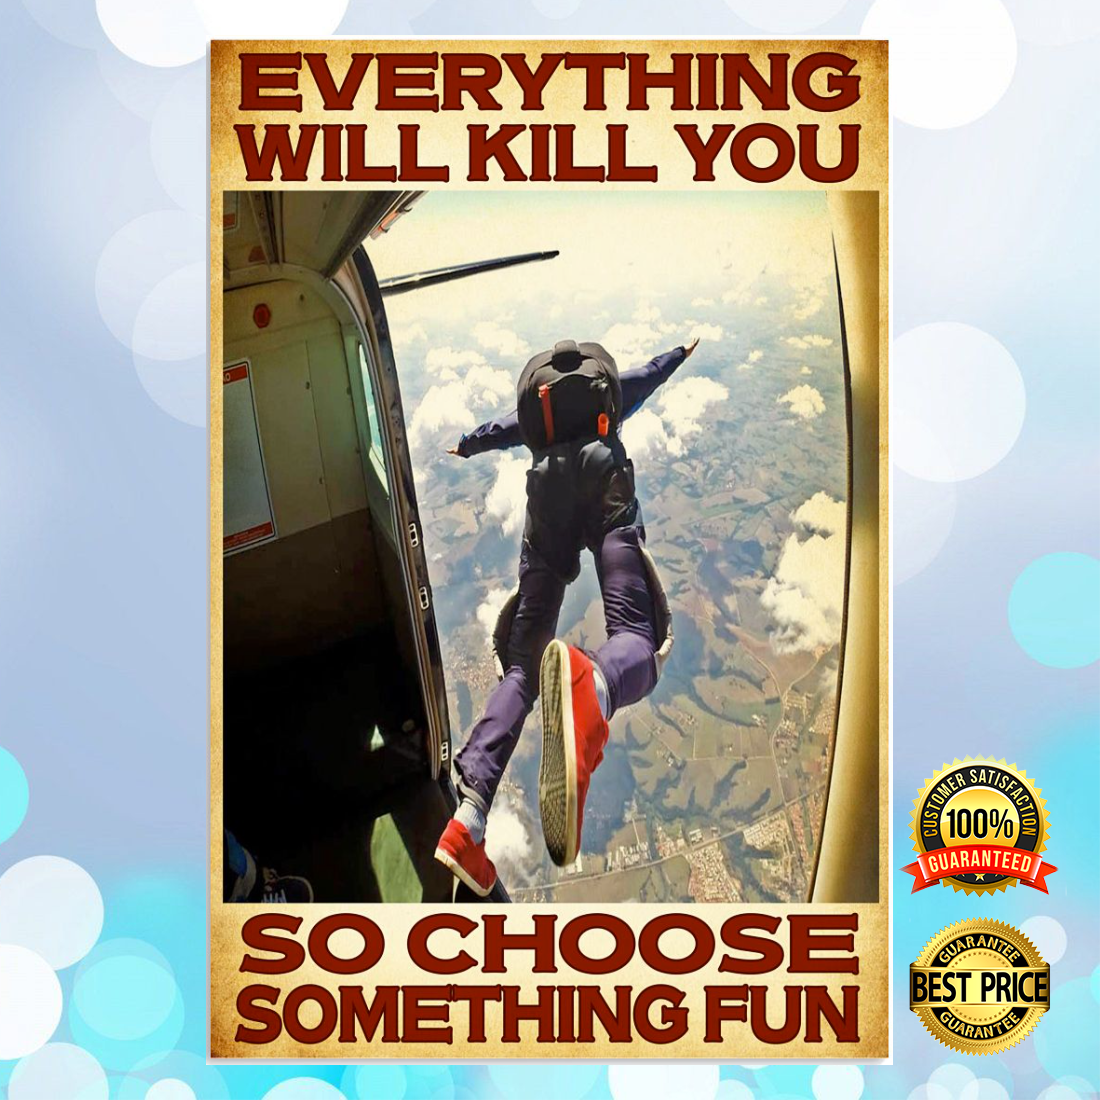 [NEW] SKYDIVING EVERYTHING WILL KILL YOU SO CHOOSE SOMETHING FUN POSTER